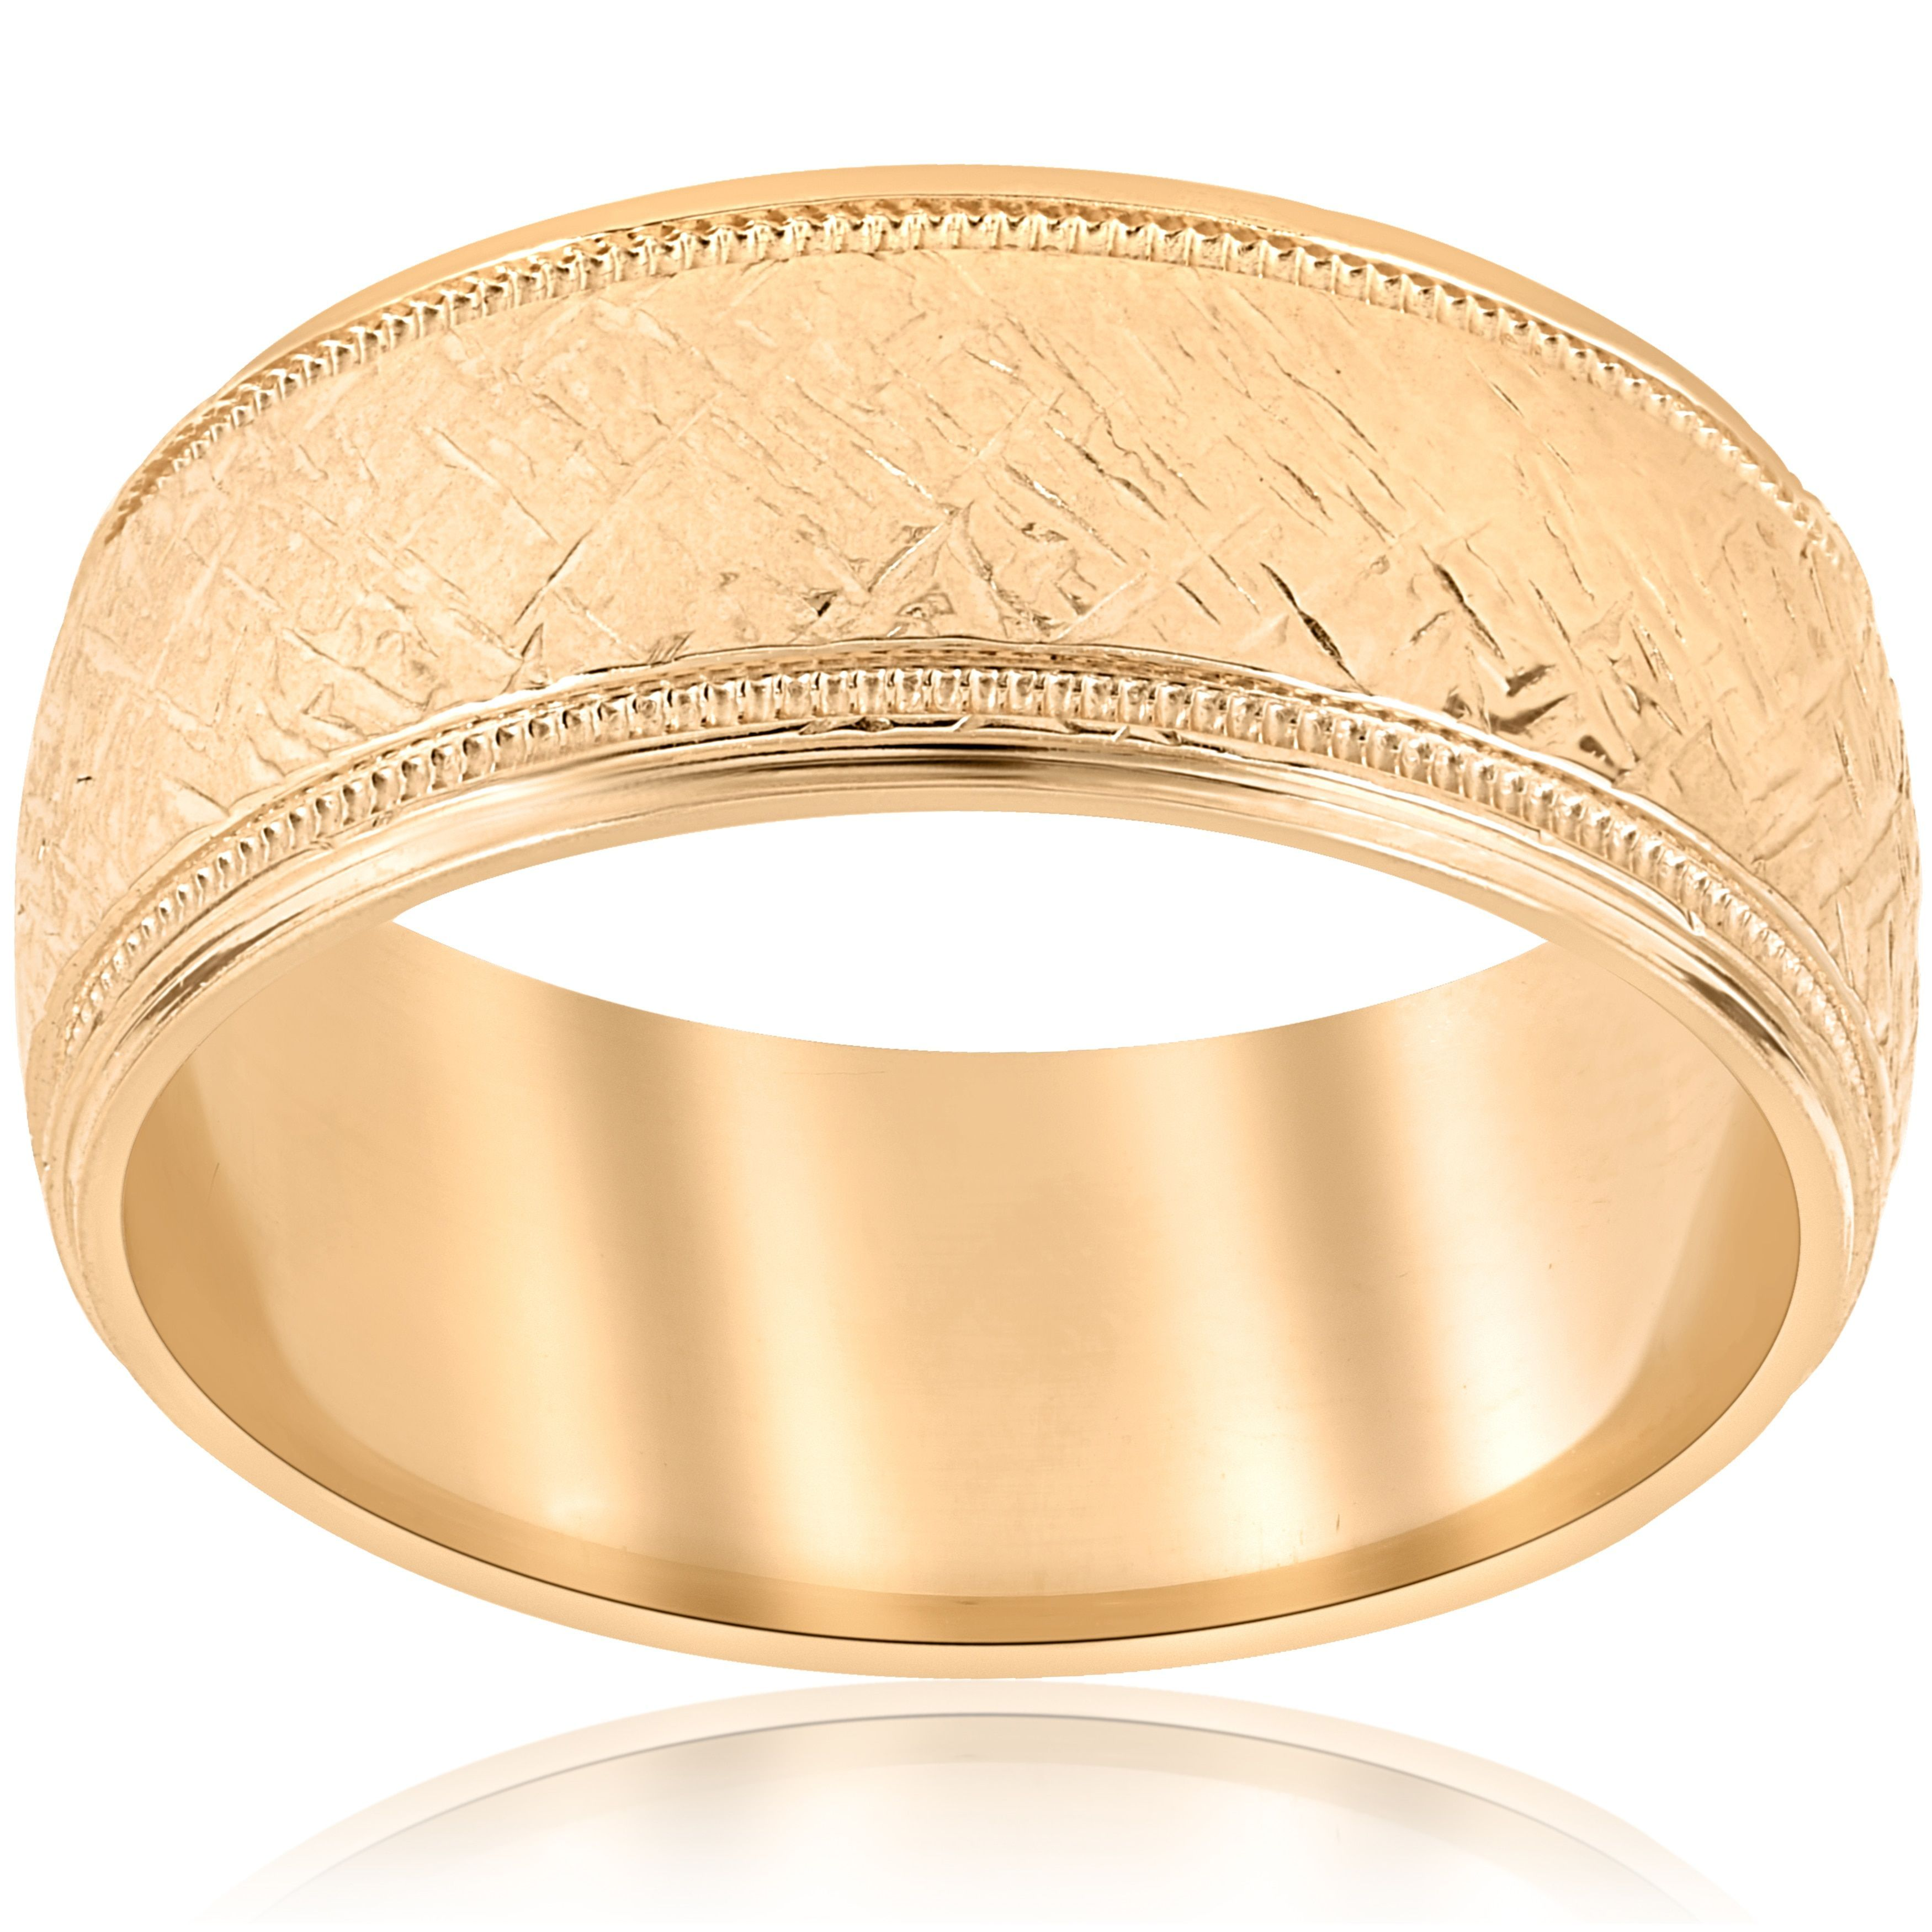 2efe842dc43f0 Bliss 10k Yellow Gold Mens Two Tone Wedding Ring Mans Ring 8MM Hand ...